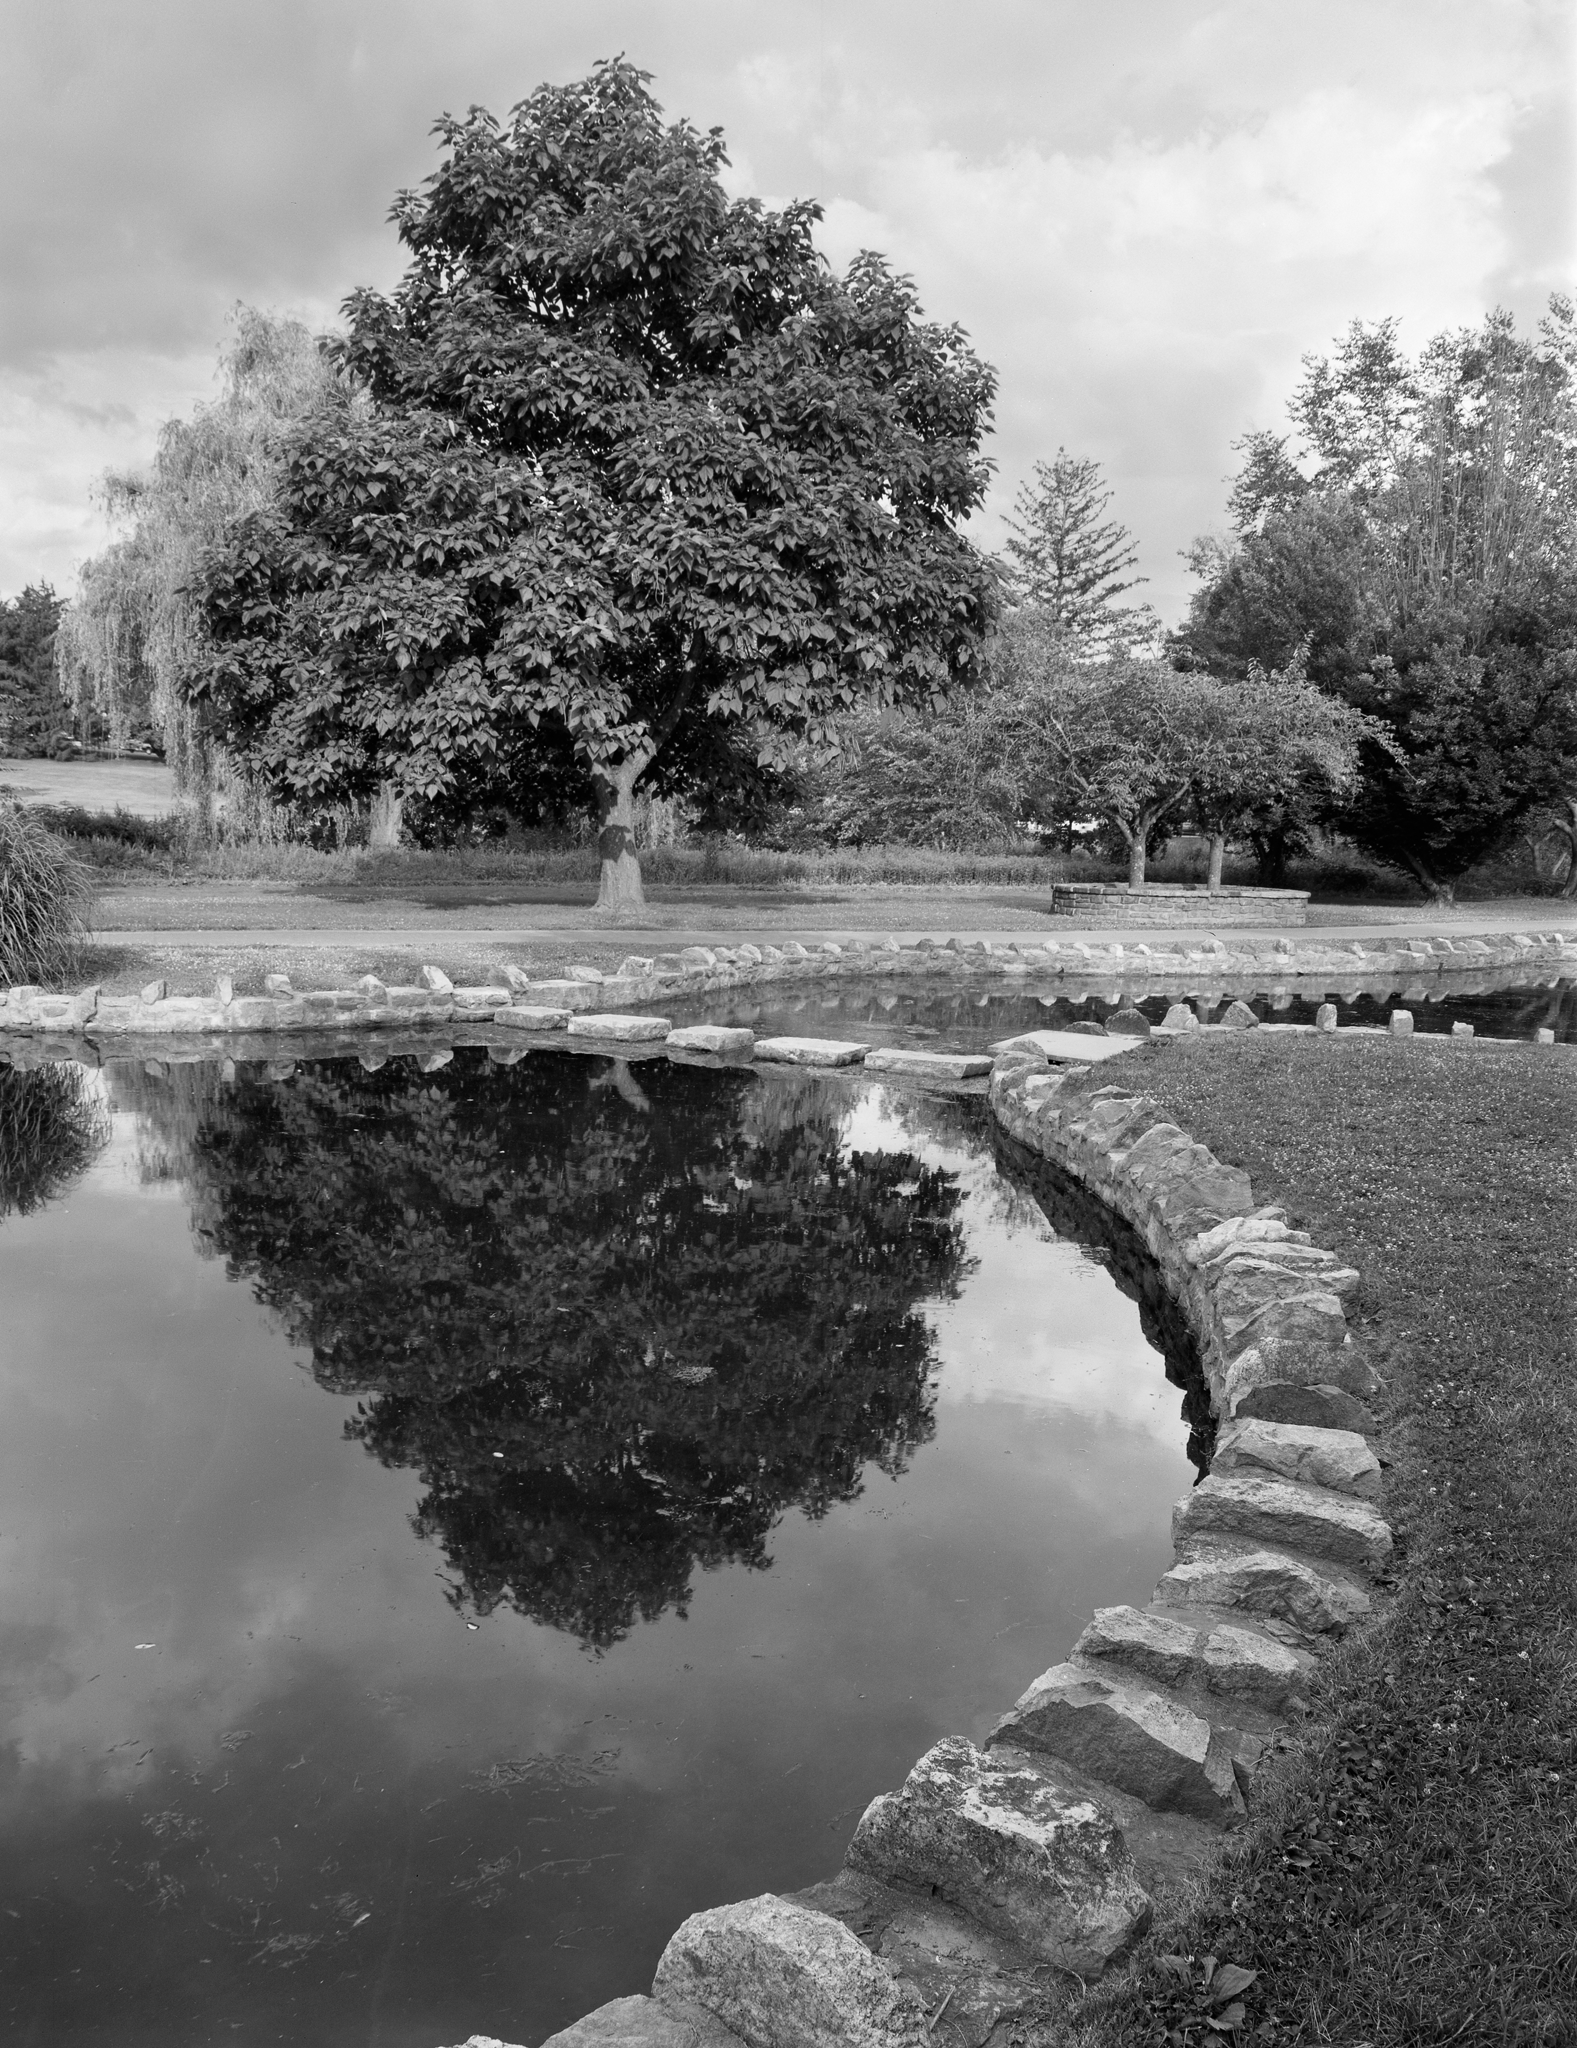 4x5_for_365_project_0194_AllentownRoseGarden_reflecting_pool.png